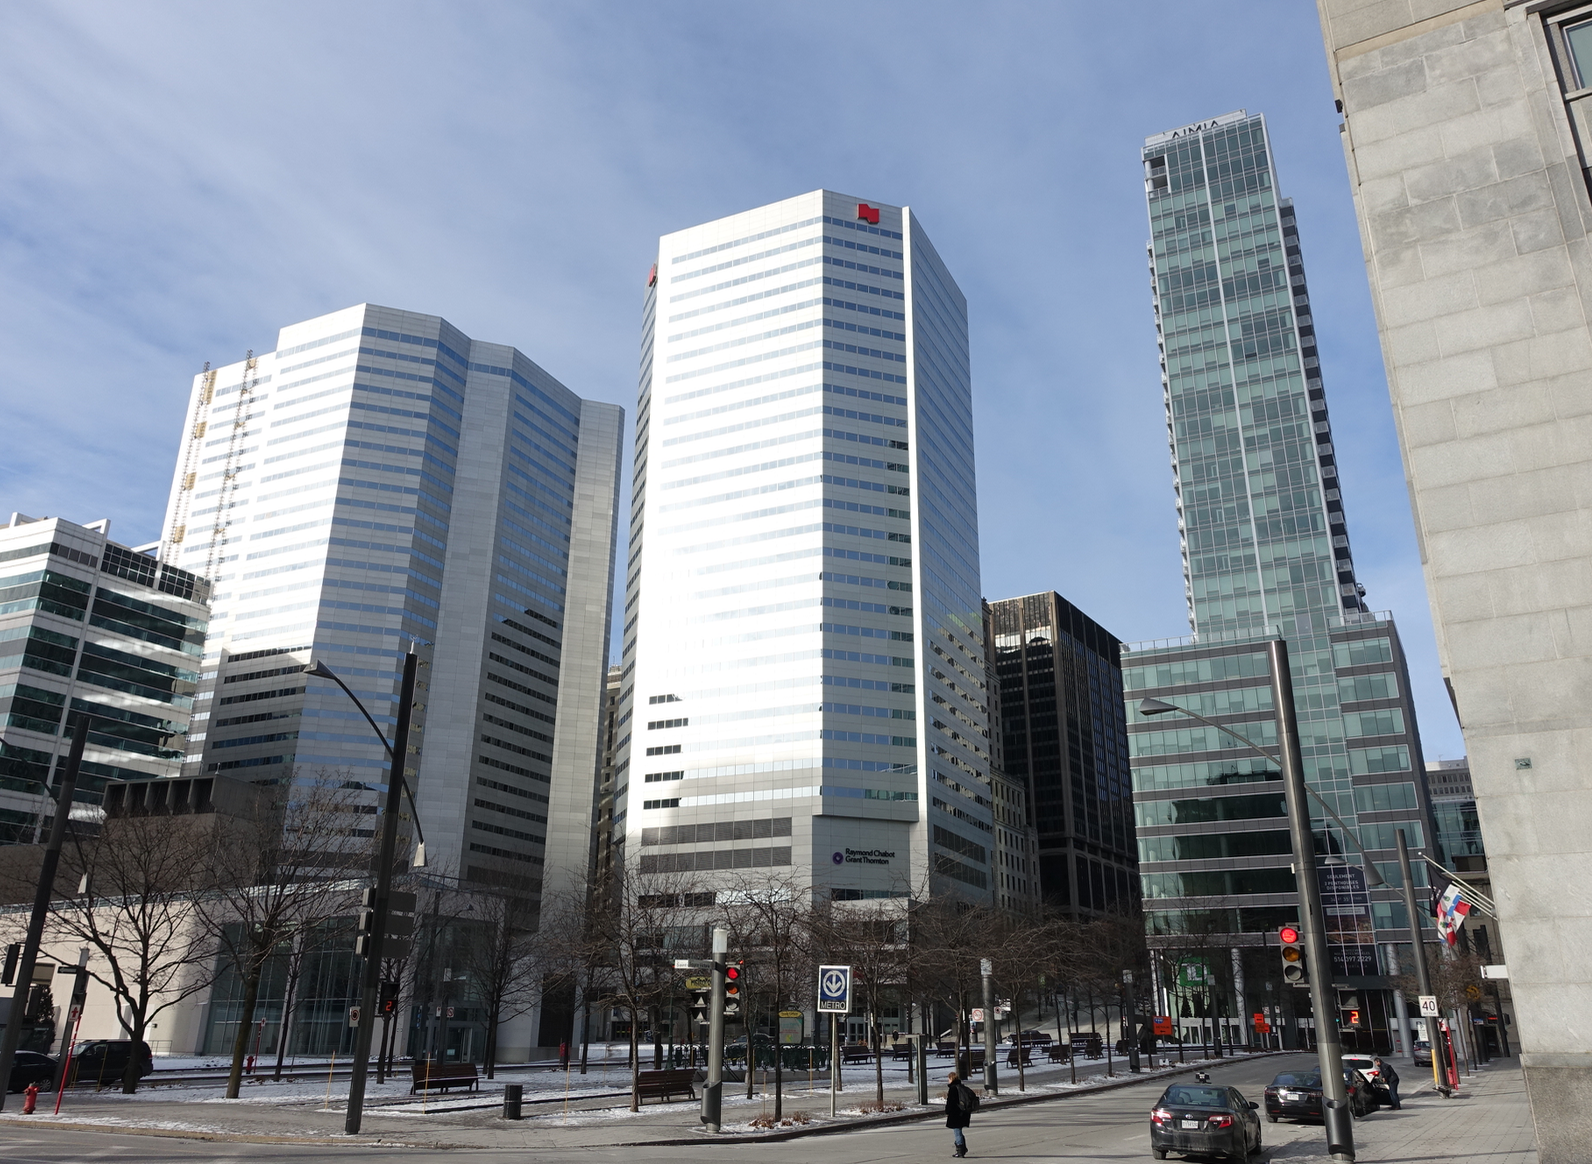 The streets around Montreal's office towers are devoid of people and animation, as they are in every city.